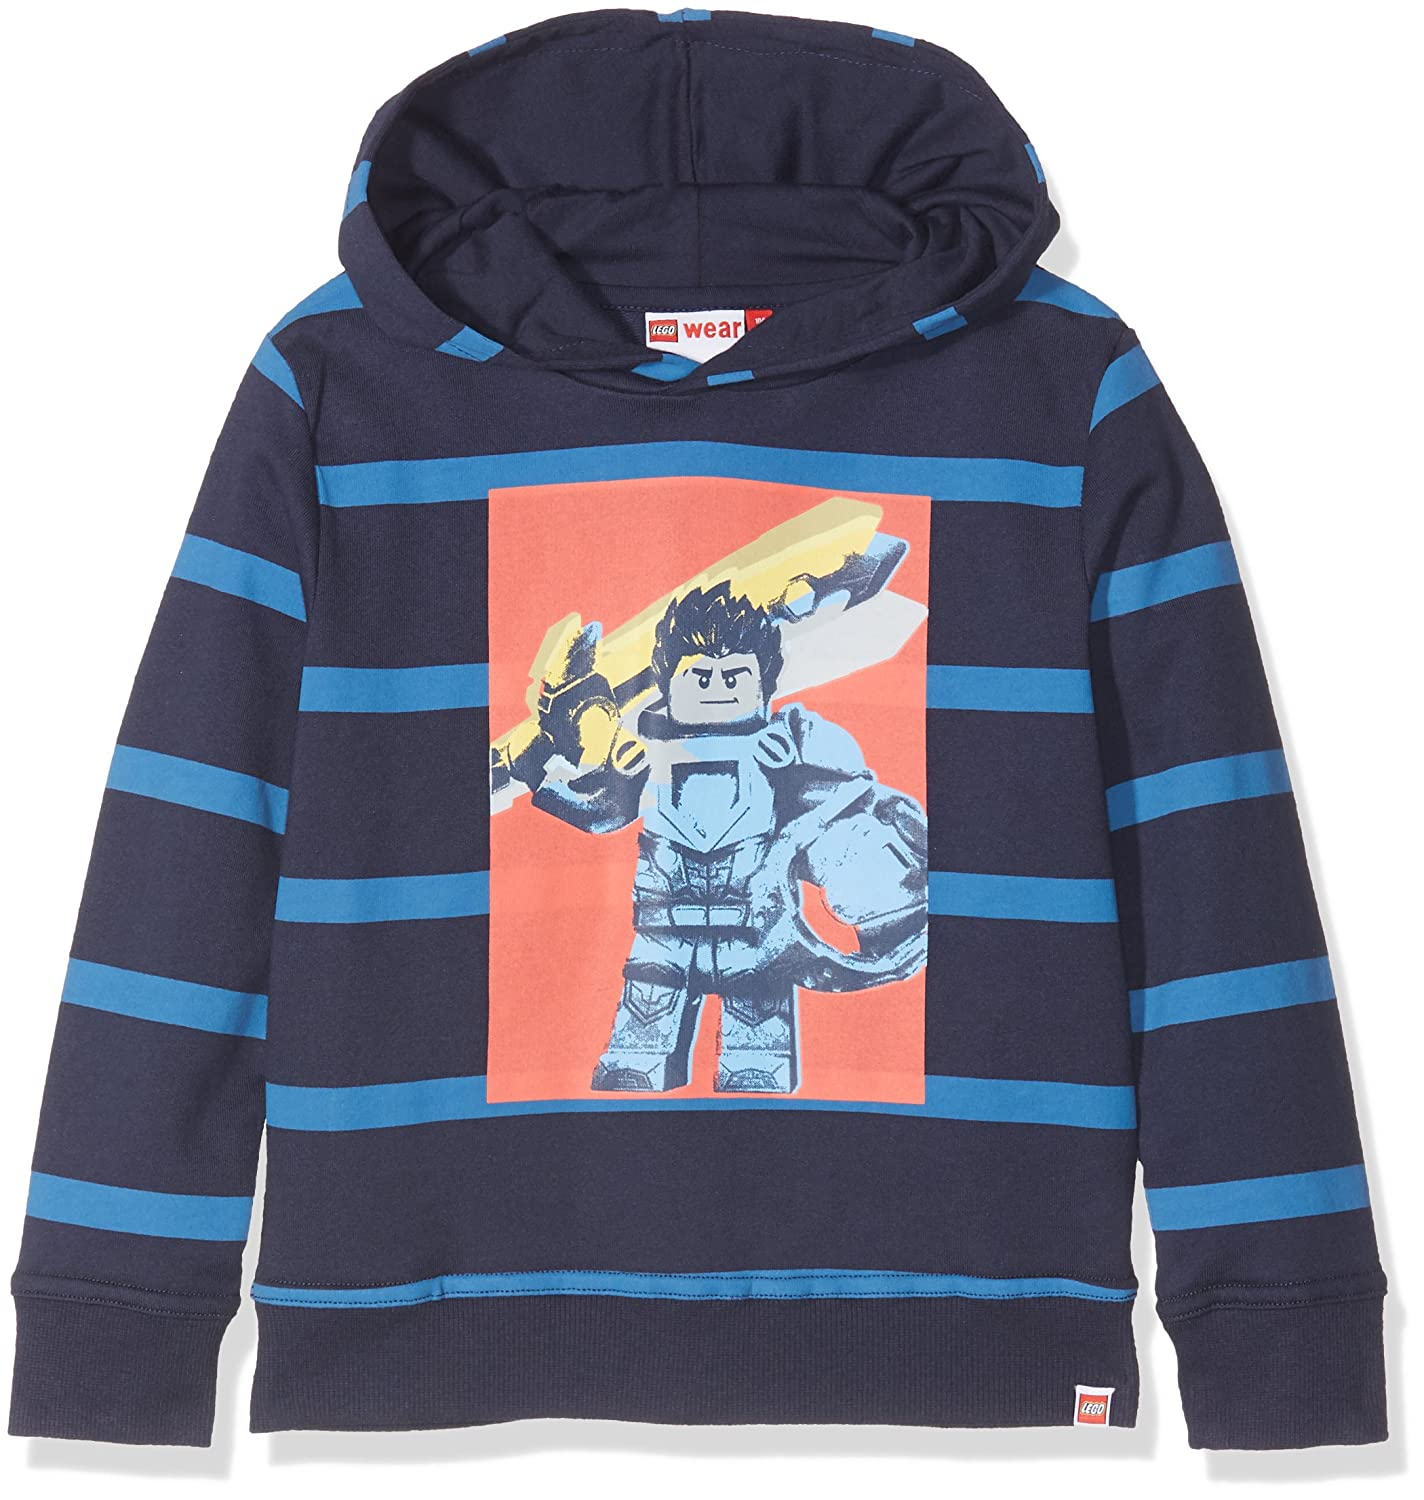 Lego Wear Boy's Sweatshirt 19524